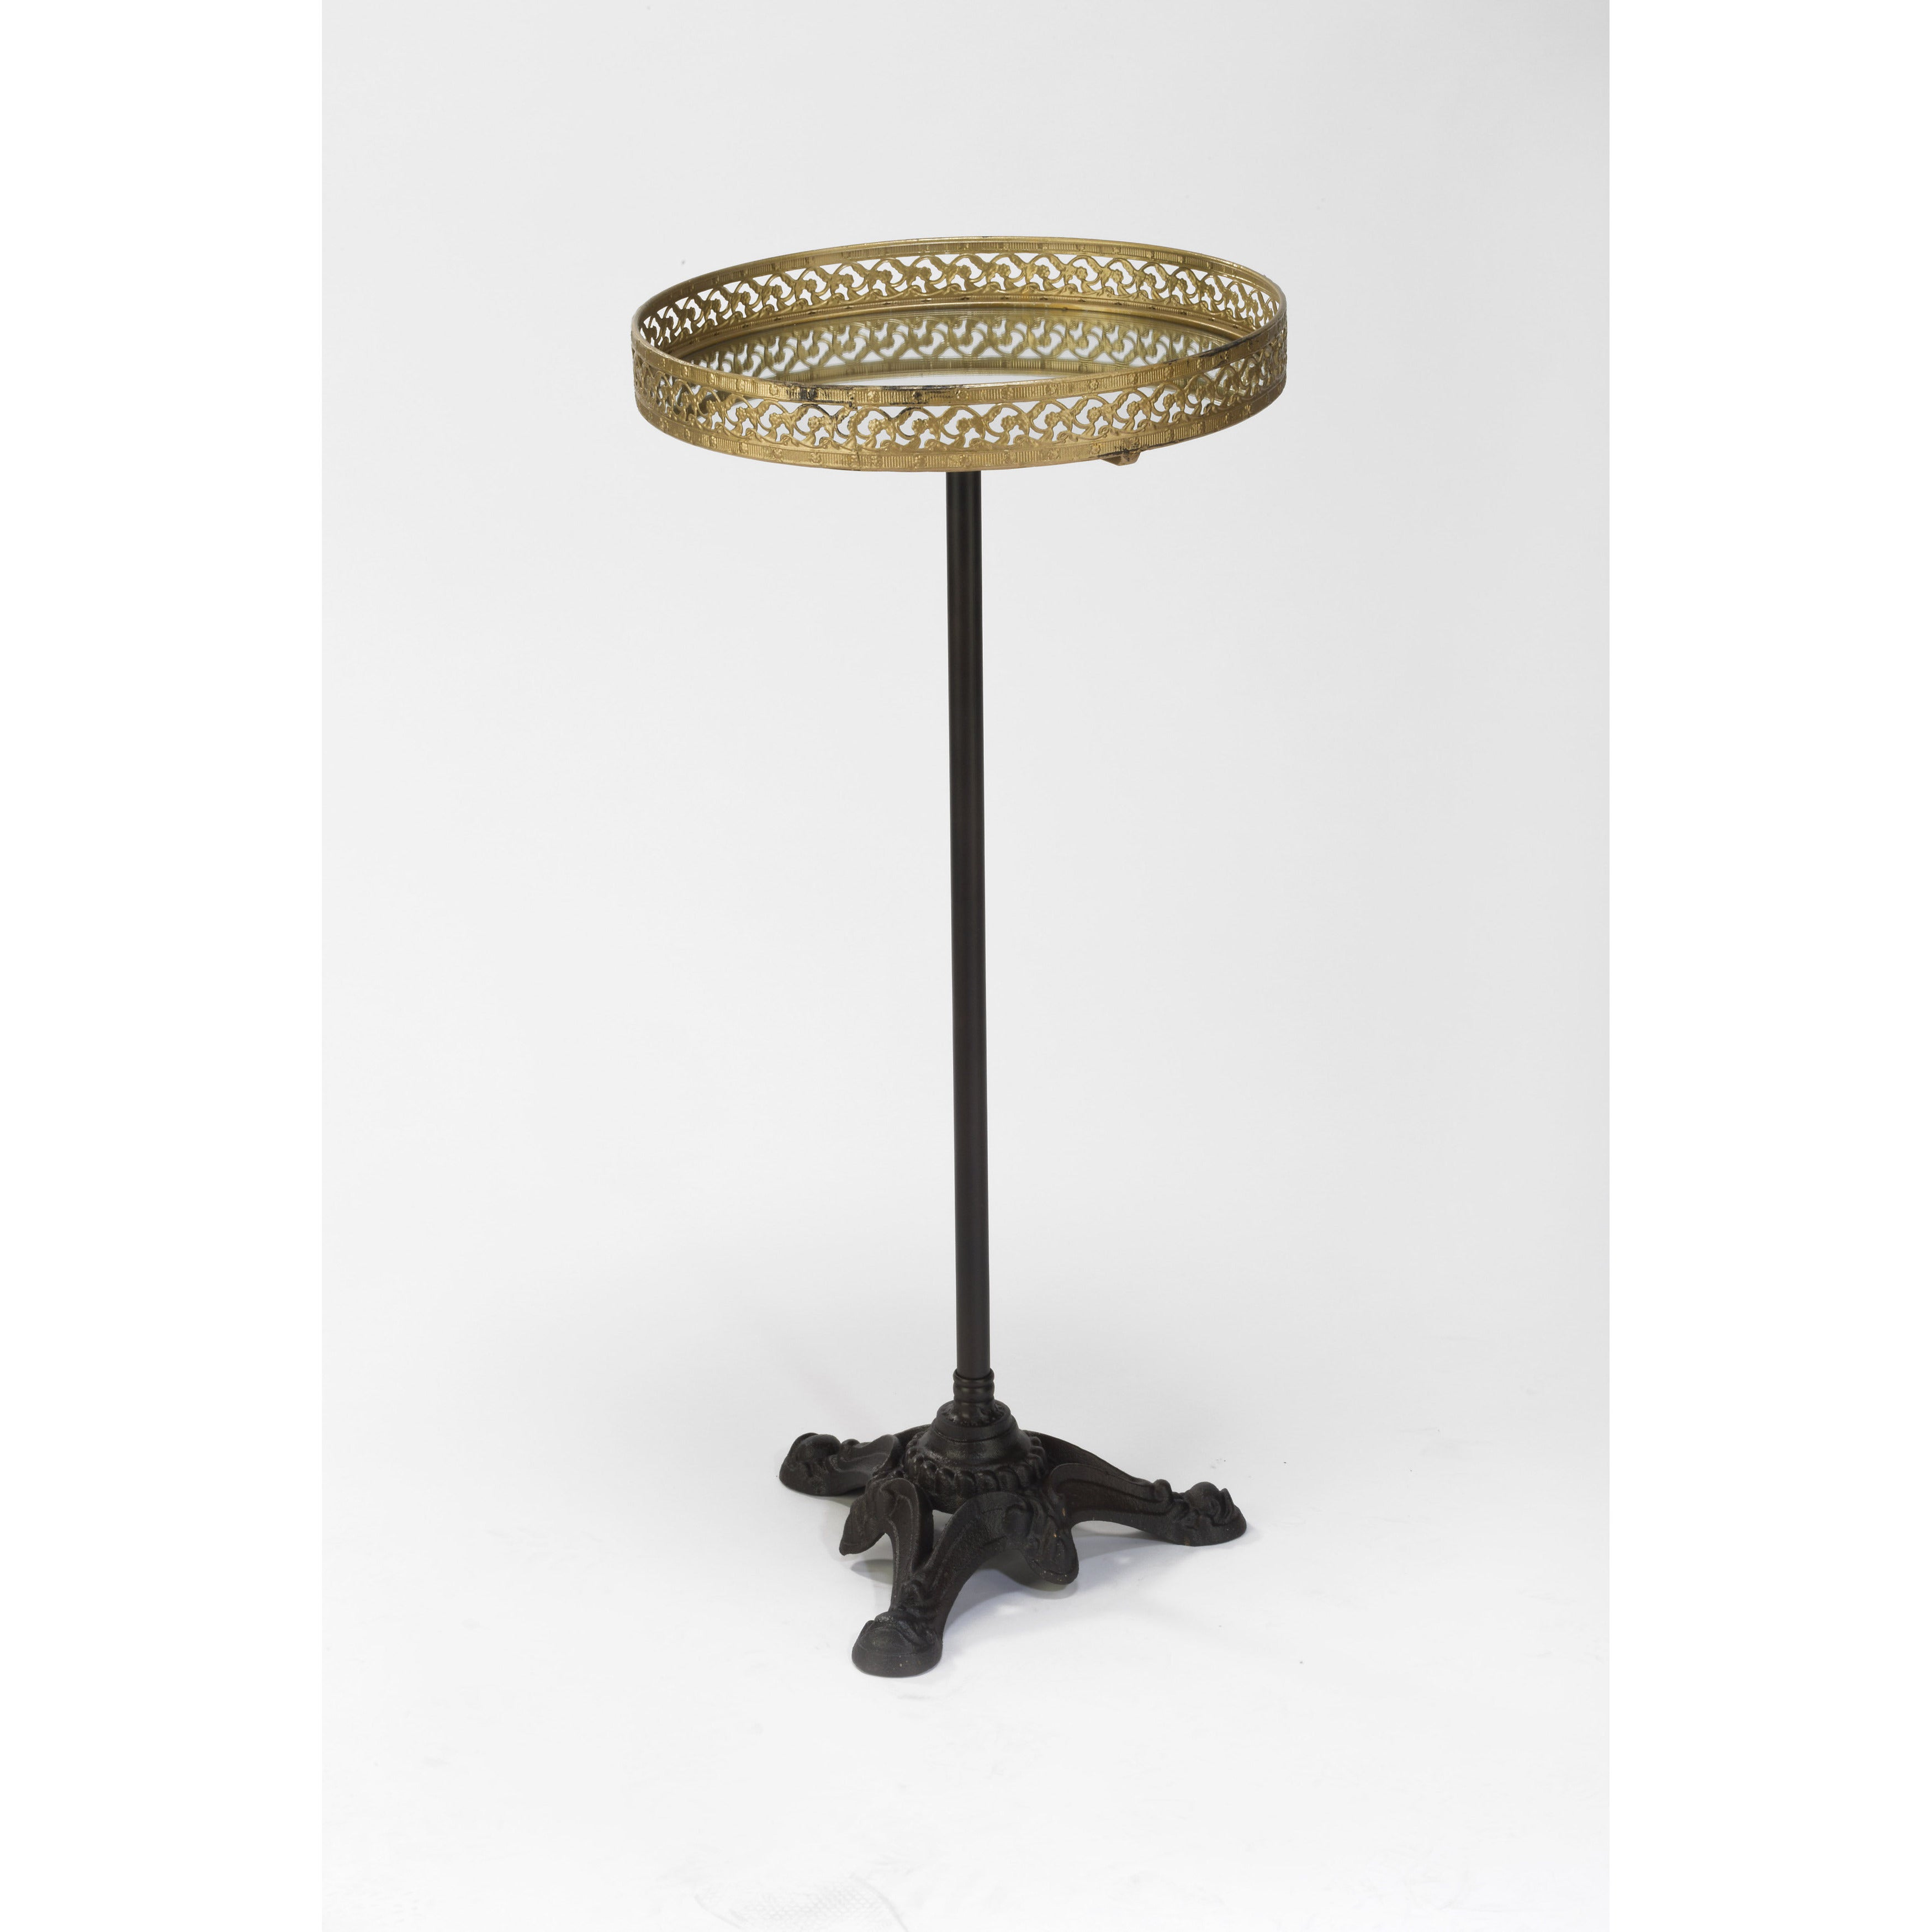 International Antique Gold Metal 33.5-inch Mirrored Table...